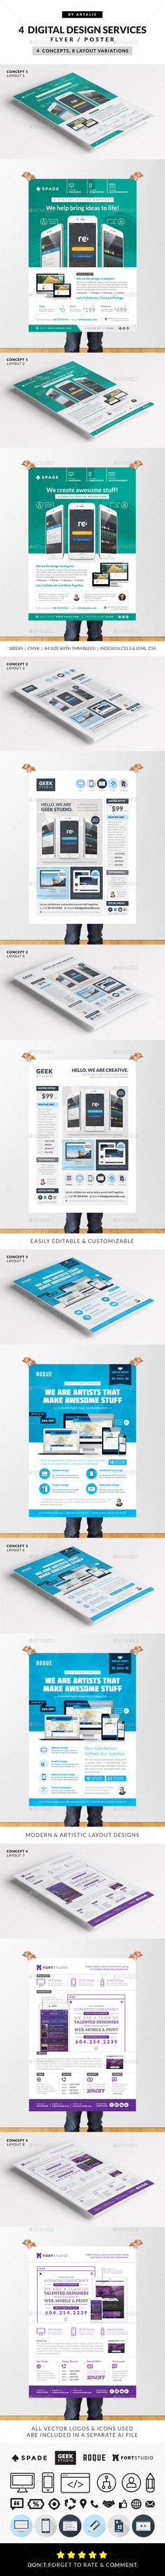 4 Design (Web/App/Graphic) Services Flyer/Poster Template. Available for sale for only $12.